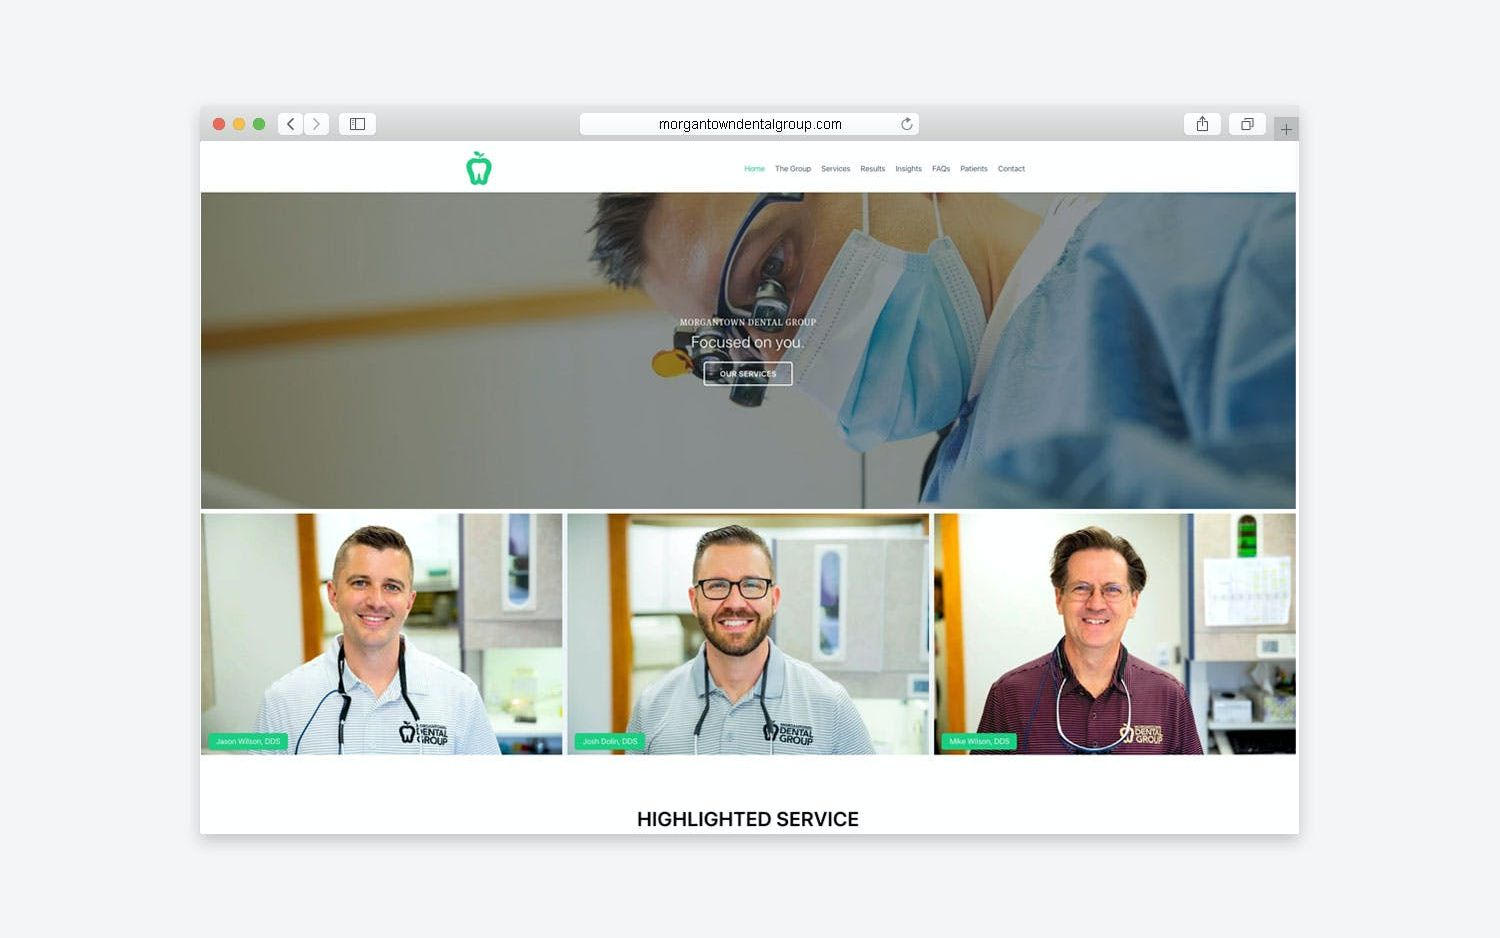 Morgantown Dental Group website - desktop view